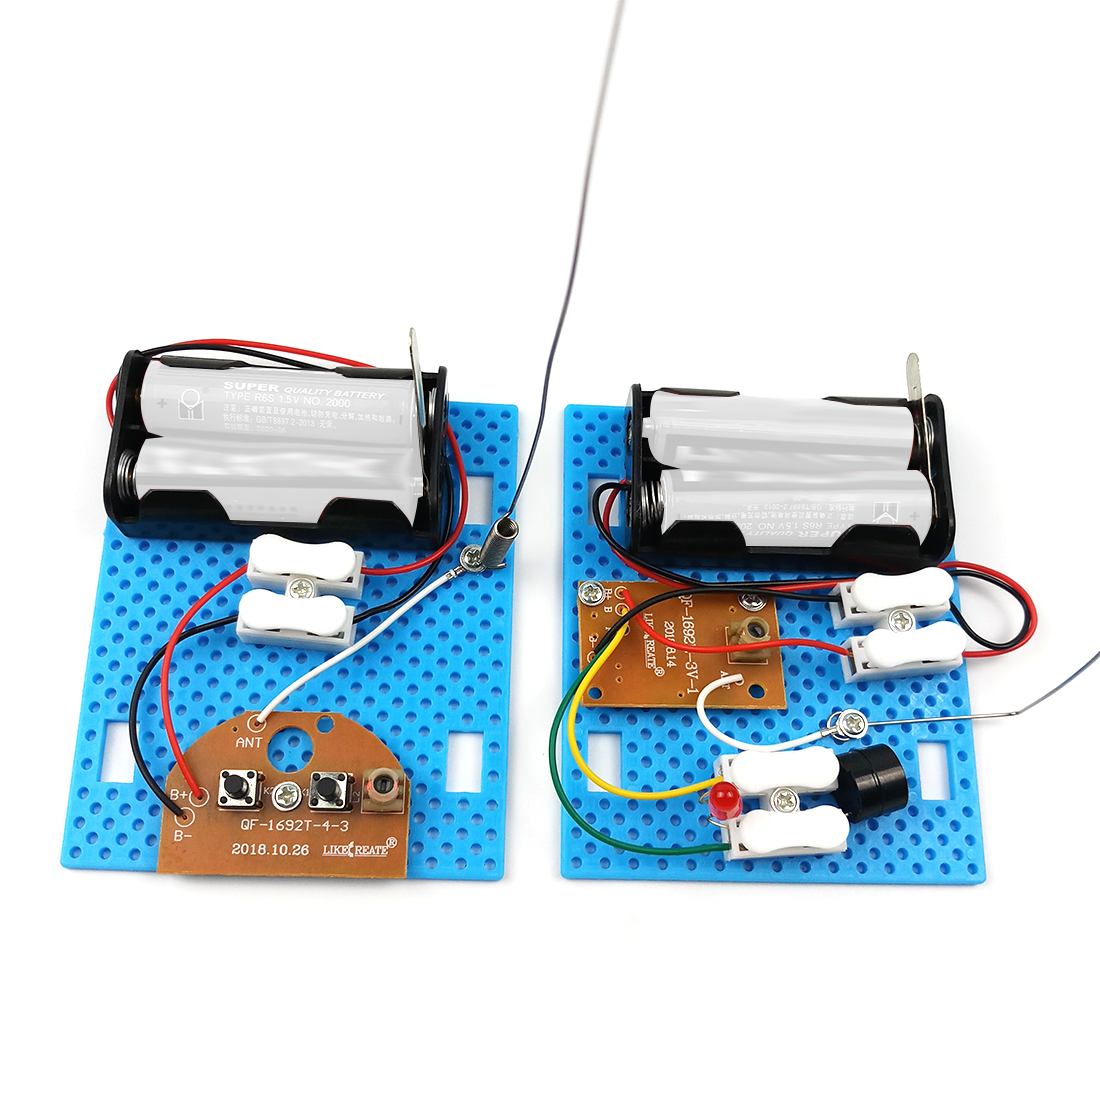 Diy Telegraph Machine Model Kit Experiment Toys Creative Physics Handmade Scientific Assembly Toy For Kids